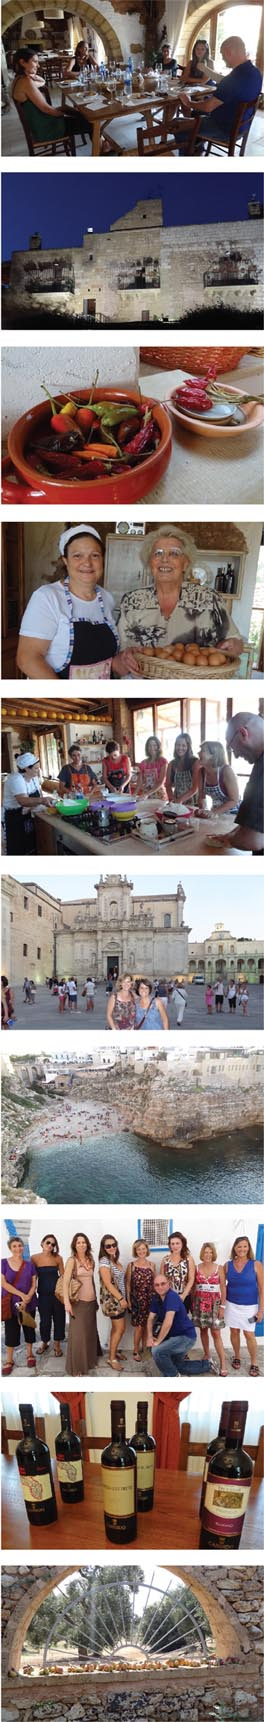 italian-language-program-puglia-2014